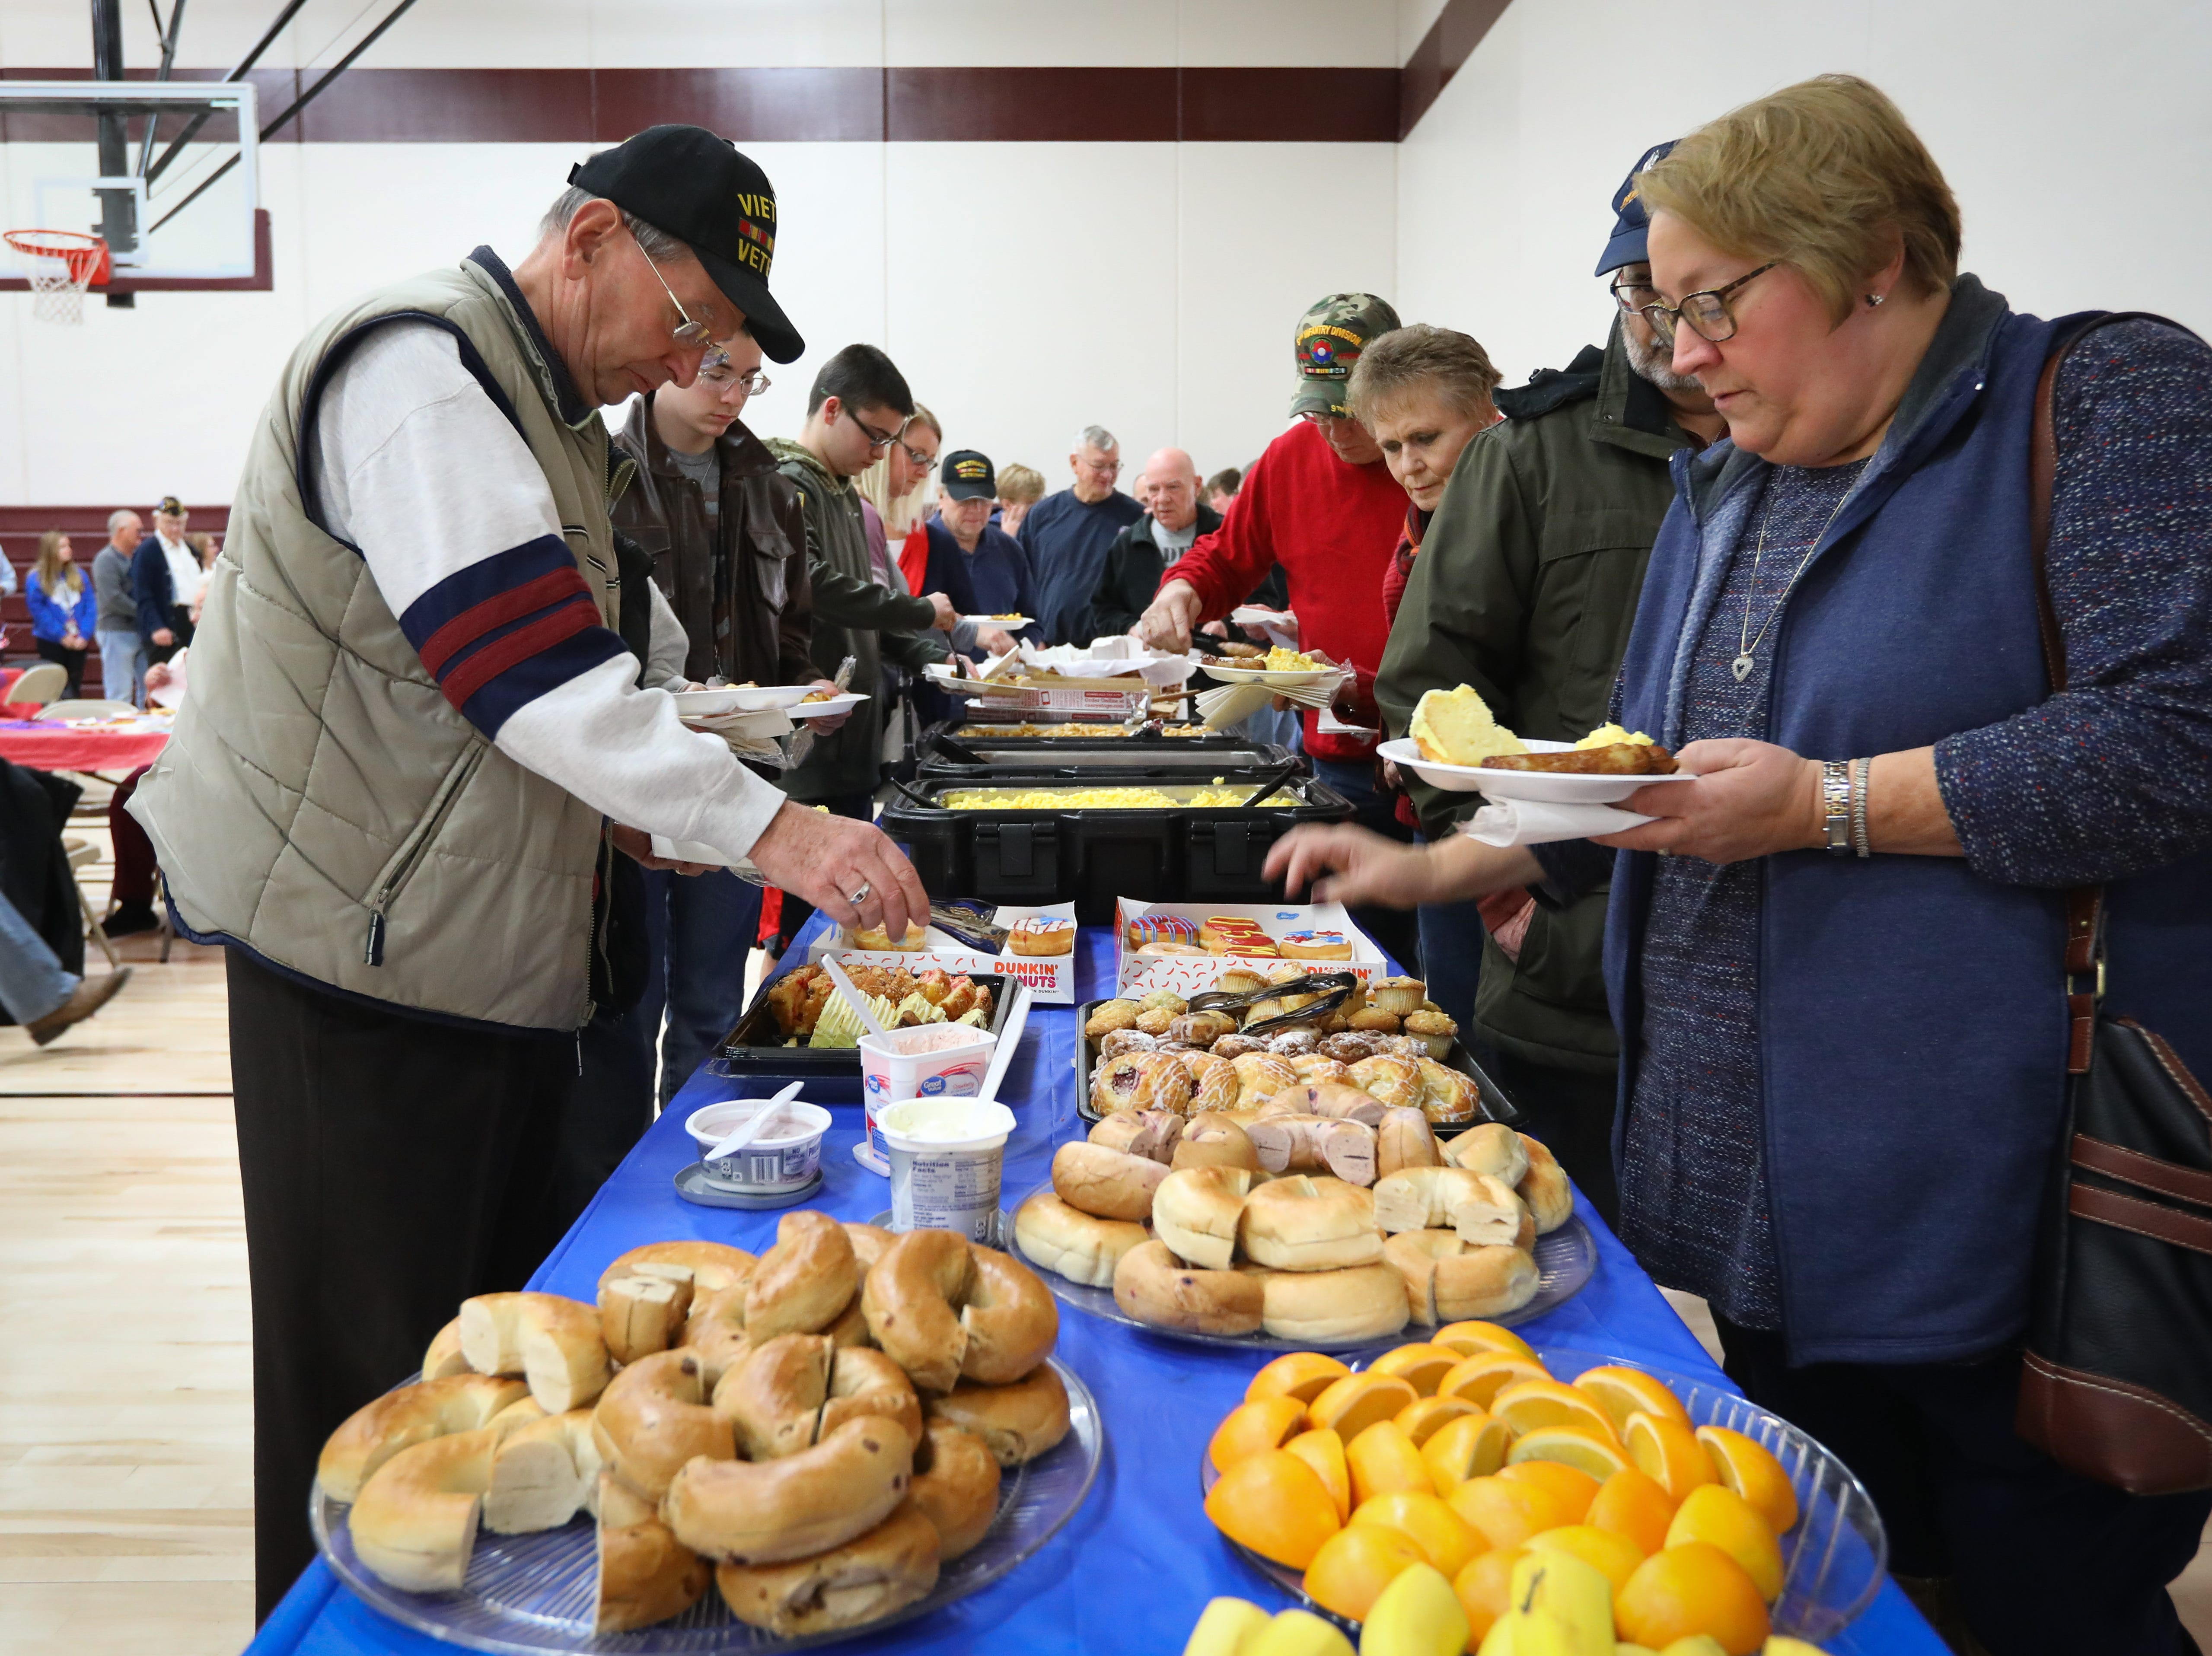 Mervin Vaughn, left, an Army veteran, gets food during Veterans Day Breakfast at Northview Middle School on Wednesday, Nov. 14, 2018 in Ankeny, Iowa. Middle school students hosted the veterans to share their gratitude before an assembly.